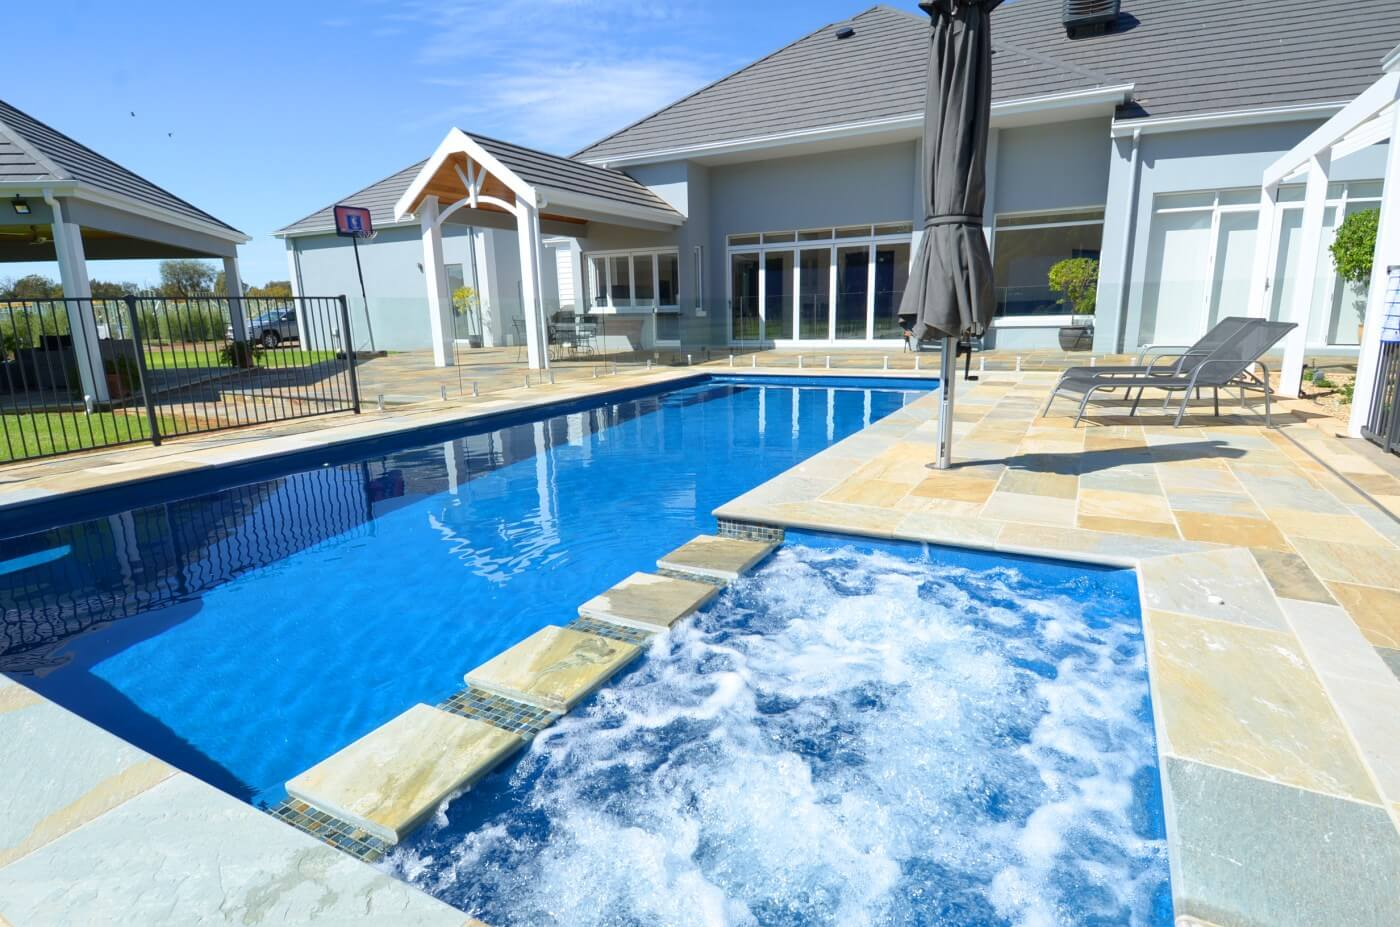 Swimming pool water features water walls bubblers and more - Swimming pool evaporation control ...